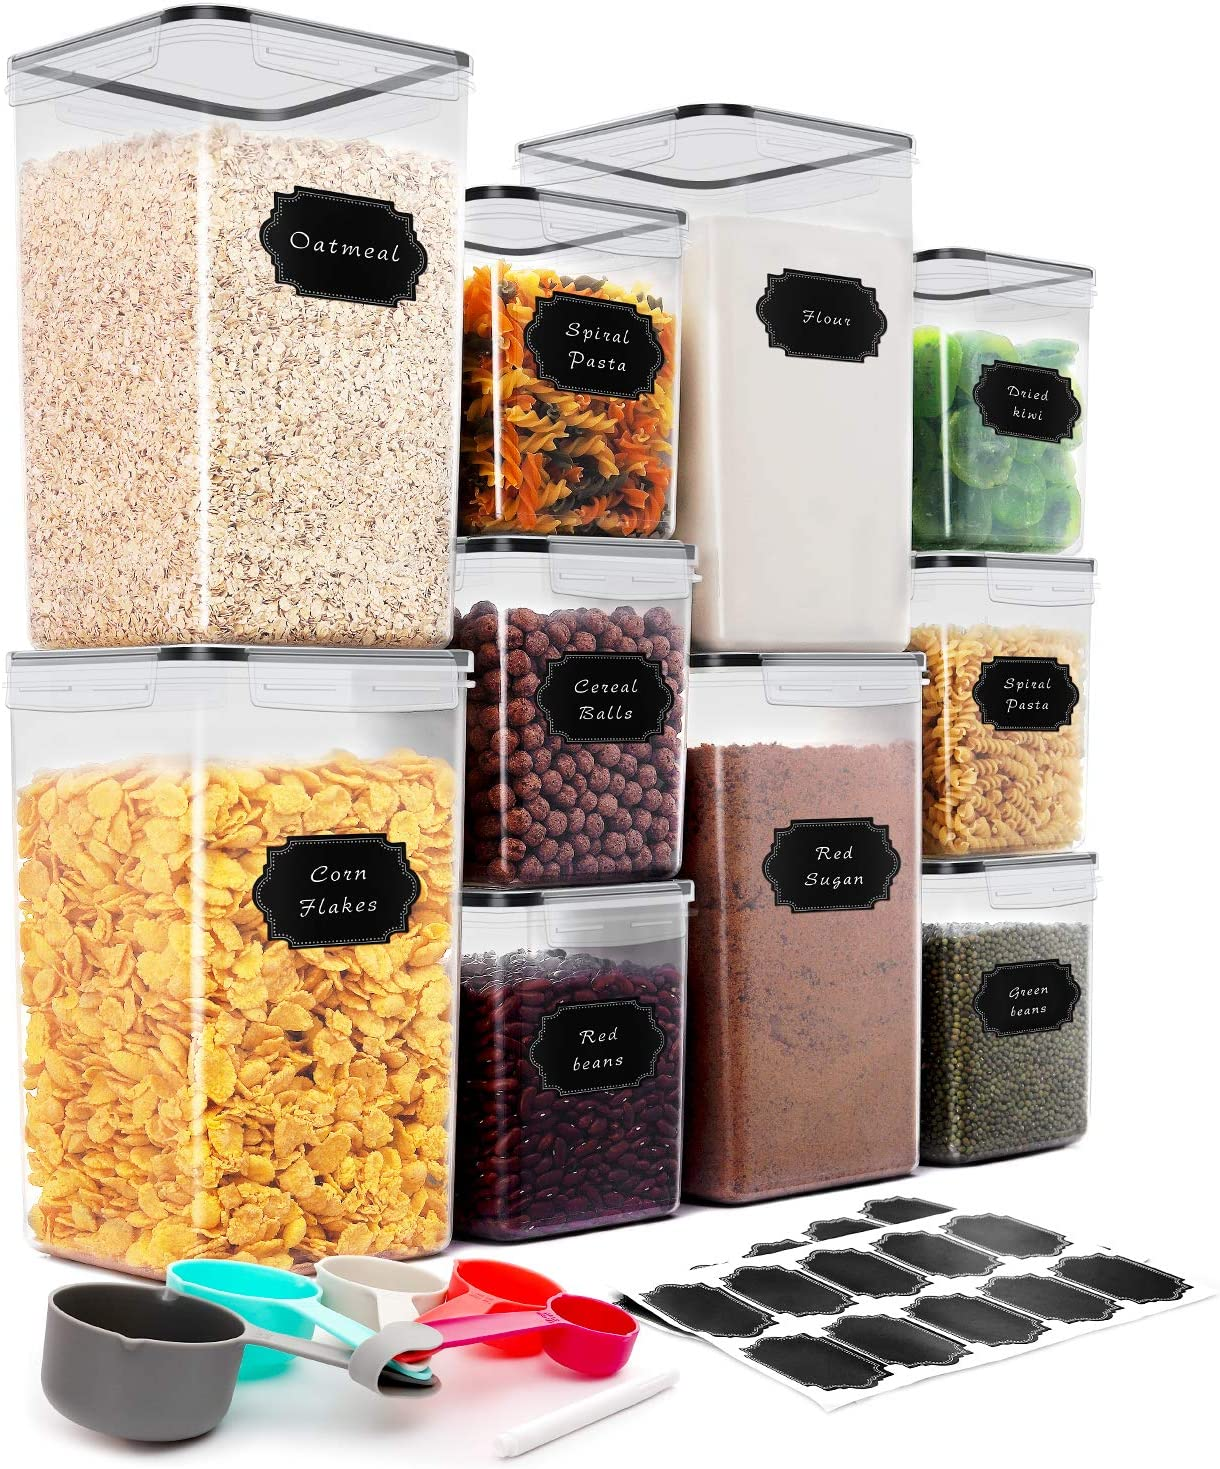 Extra Large Tall Airtight Food Storage Containers, THLEITE 10 Pcs(220oz & 85oz) - BPA Free Kitchen Pantry Storage Containers for Spaghetti, Flour and Baking Supplies - Measuring Spoons & Pen & Labels